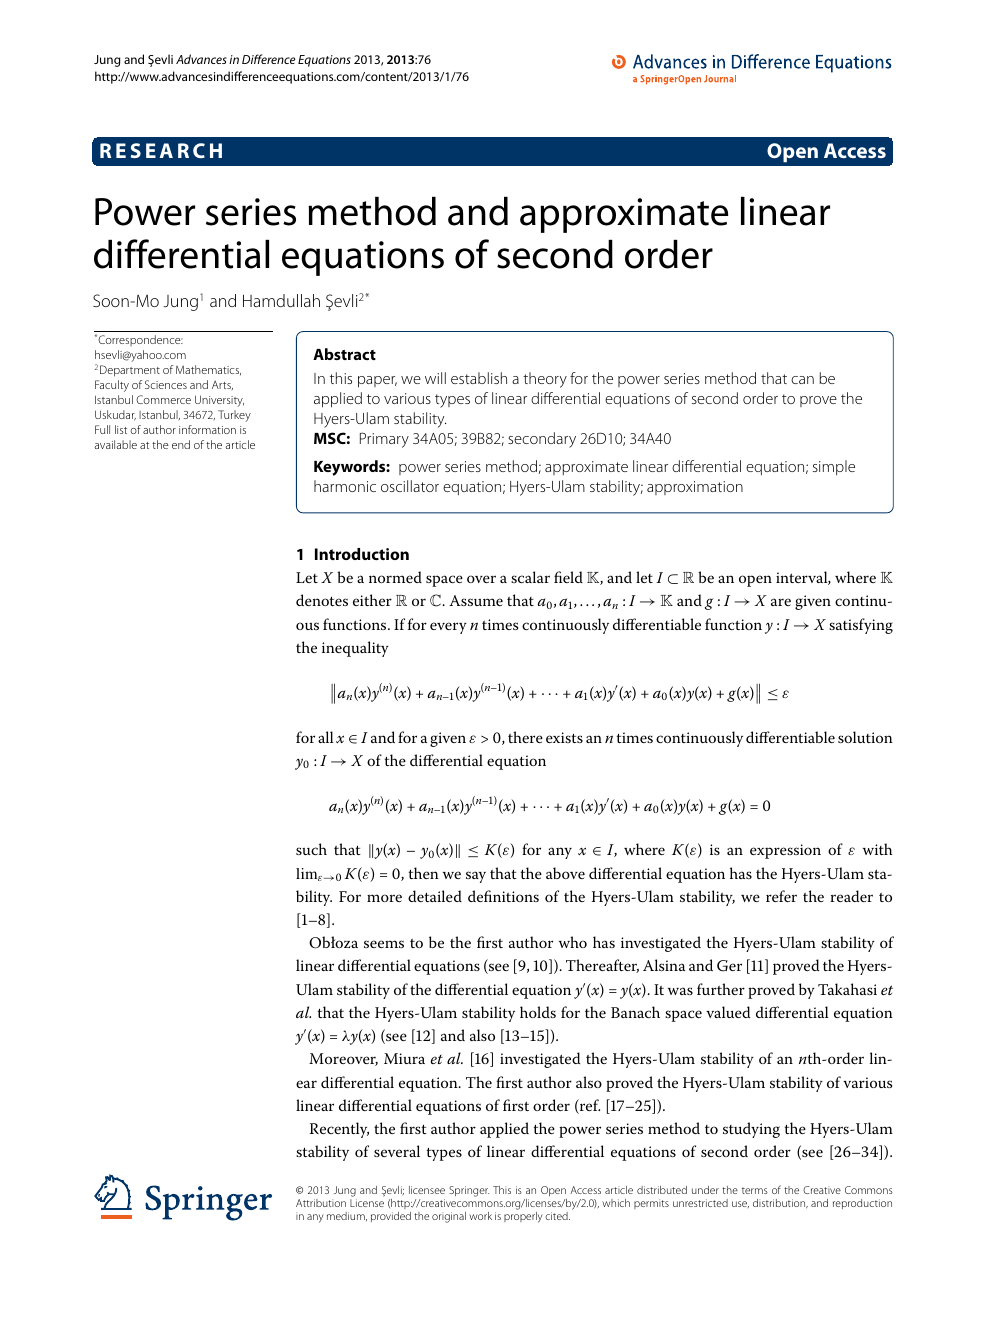 Power series method and approximate linear differential